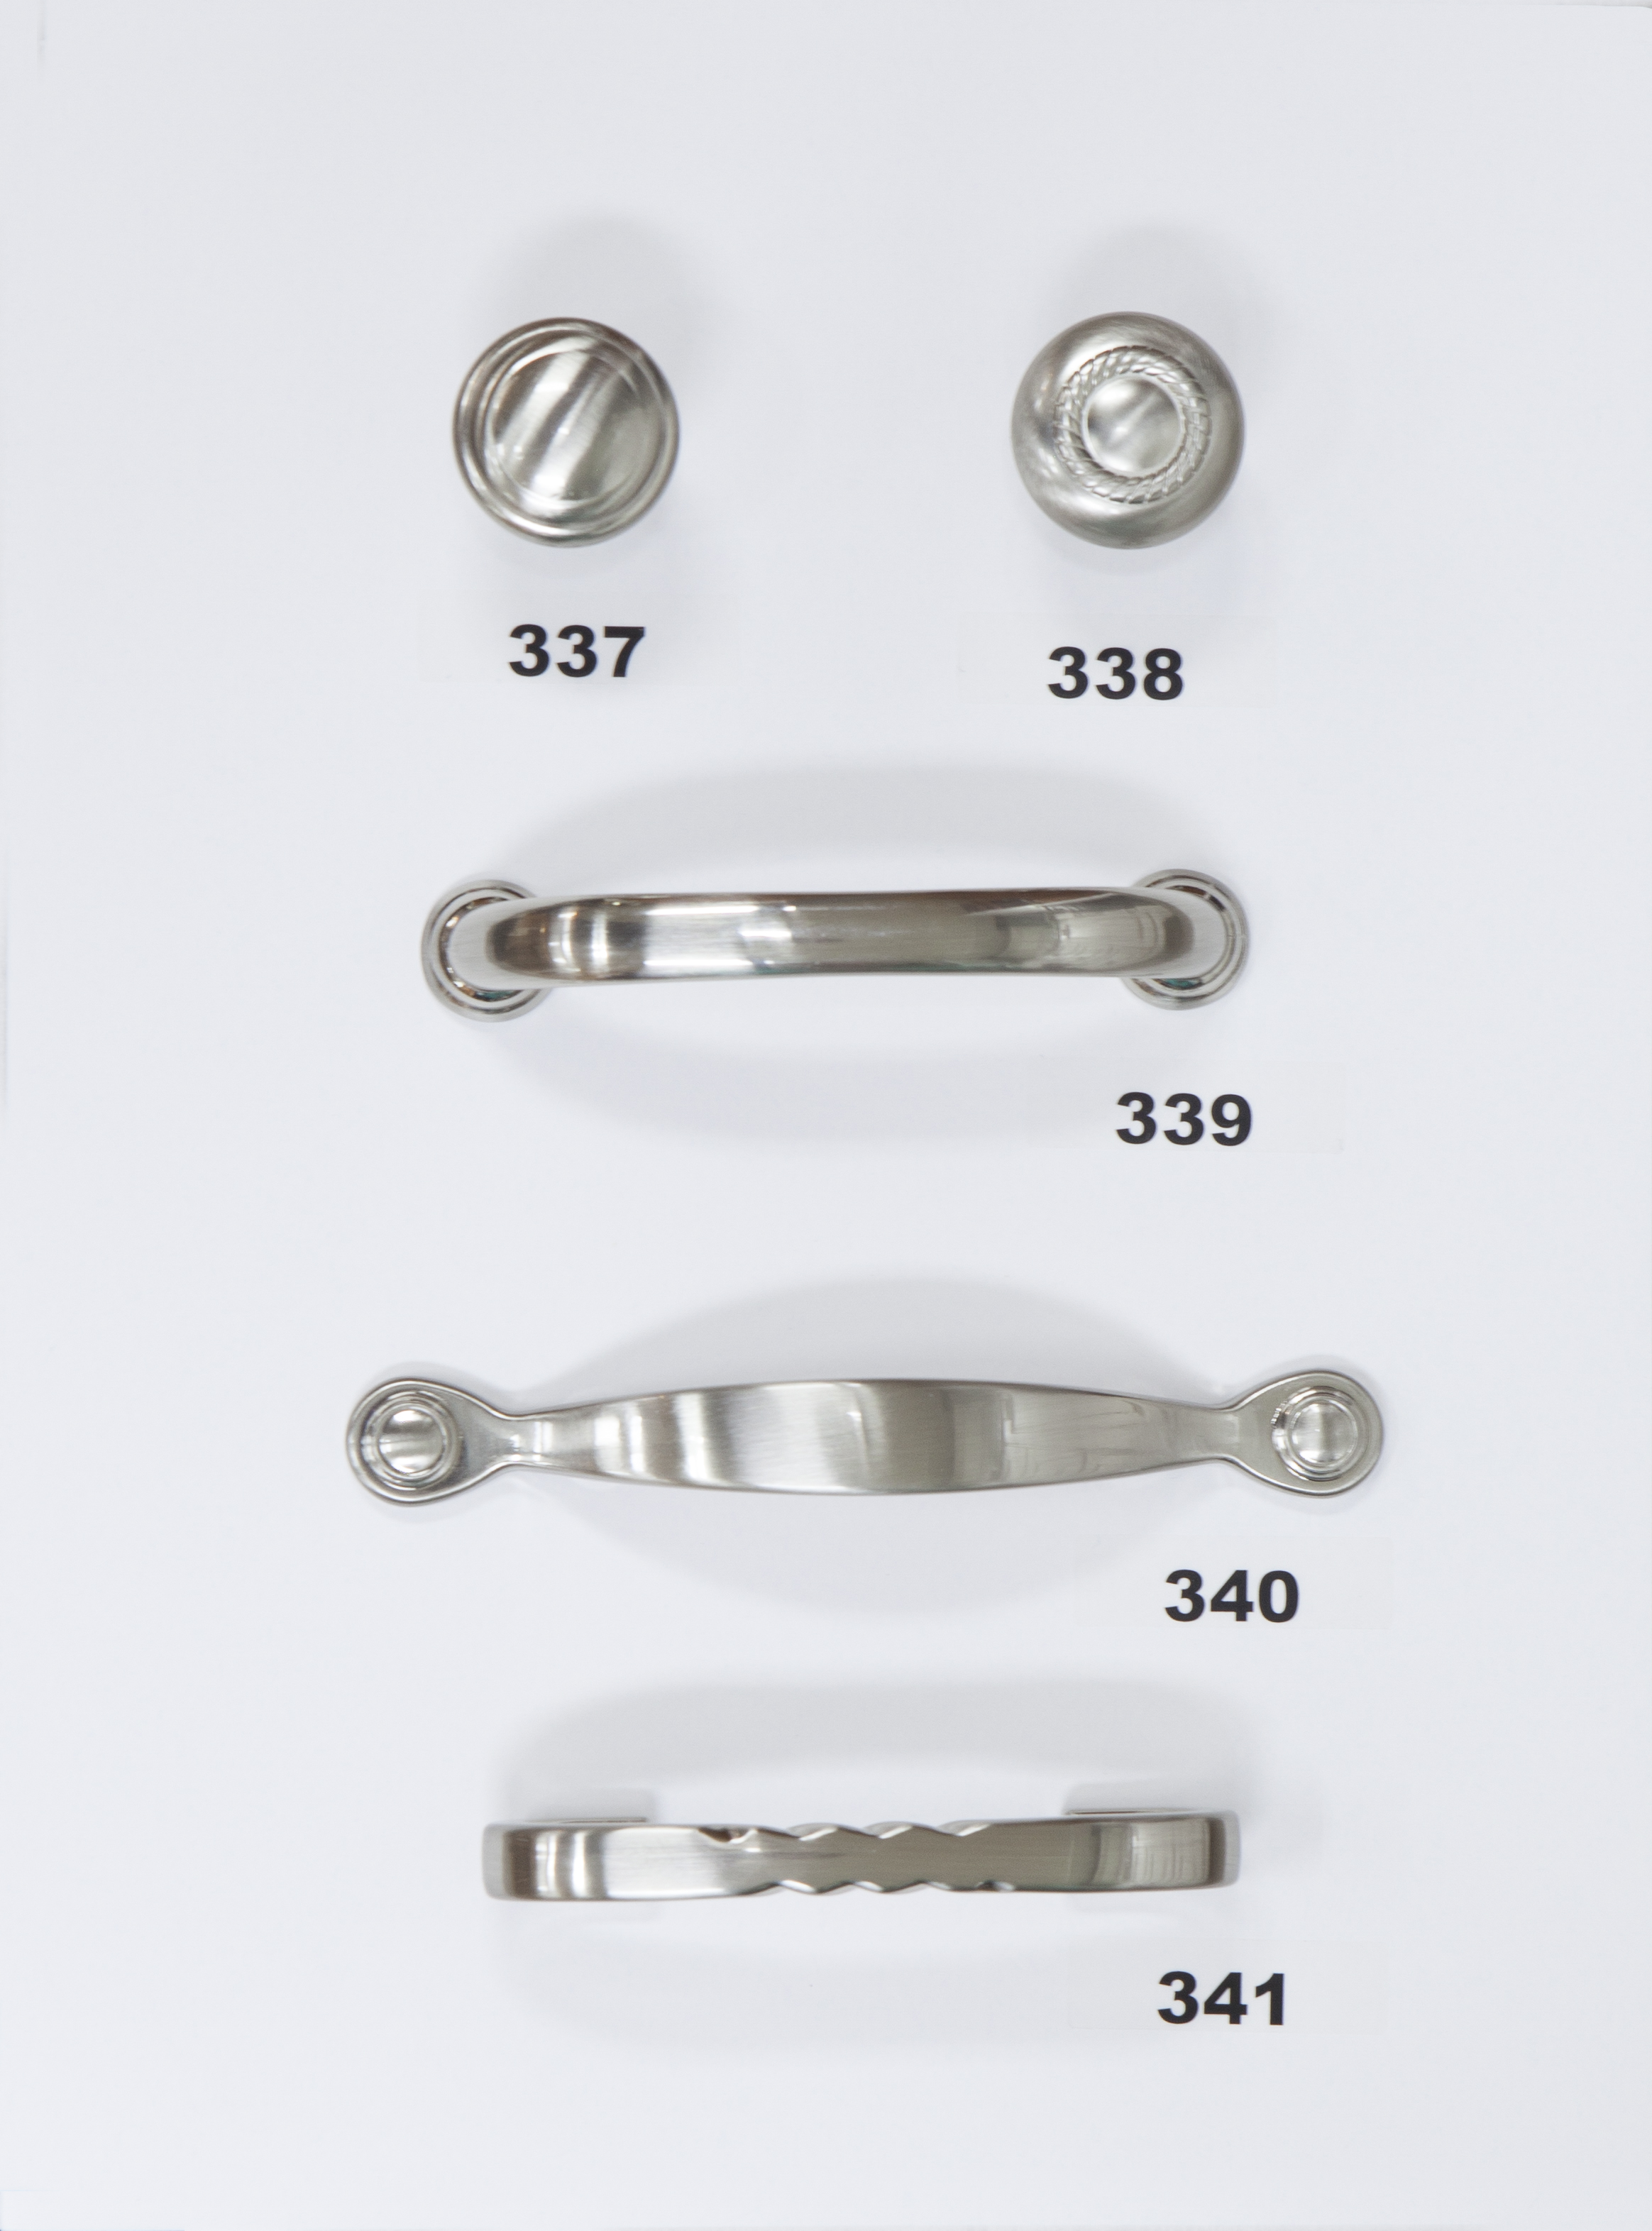 "#337 - Knob - Satin Nickel  #338 - Knob - Satin Nickel  #339 - 3 3/4"" Center - Satin Nickel  #340 - 3"" Center - Satin Nickel  #341 - 3"" Center - Satin Nickel"